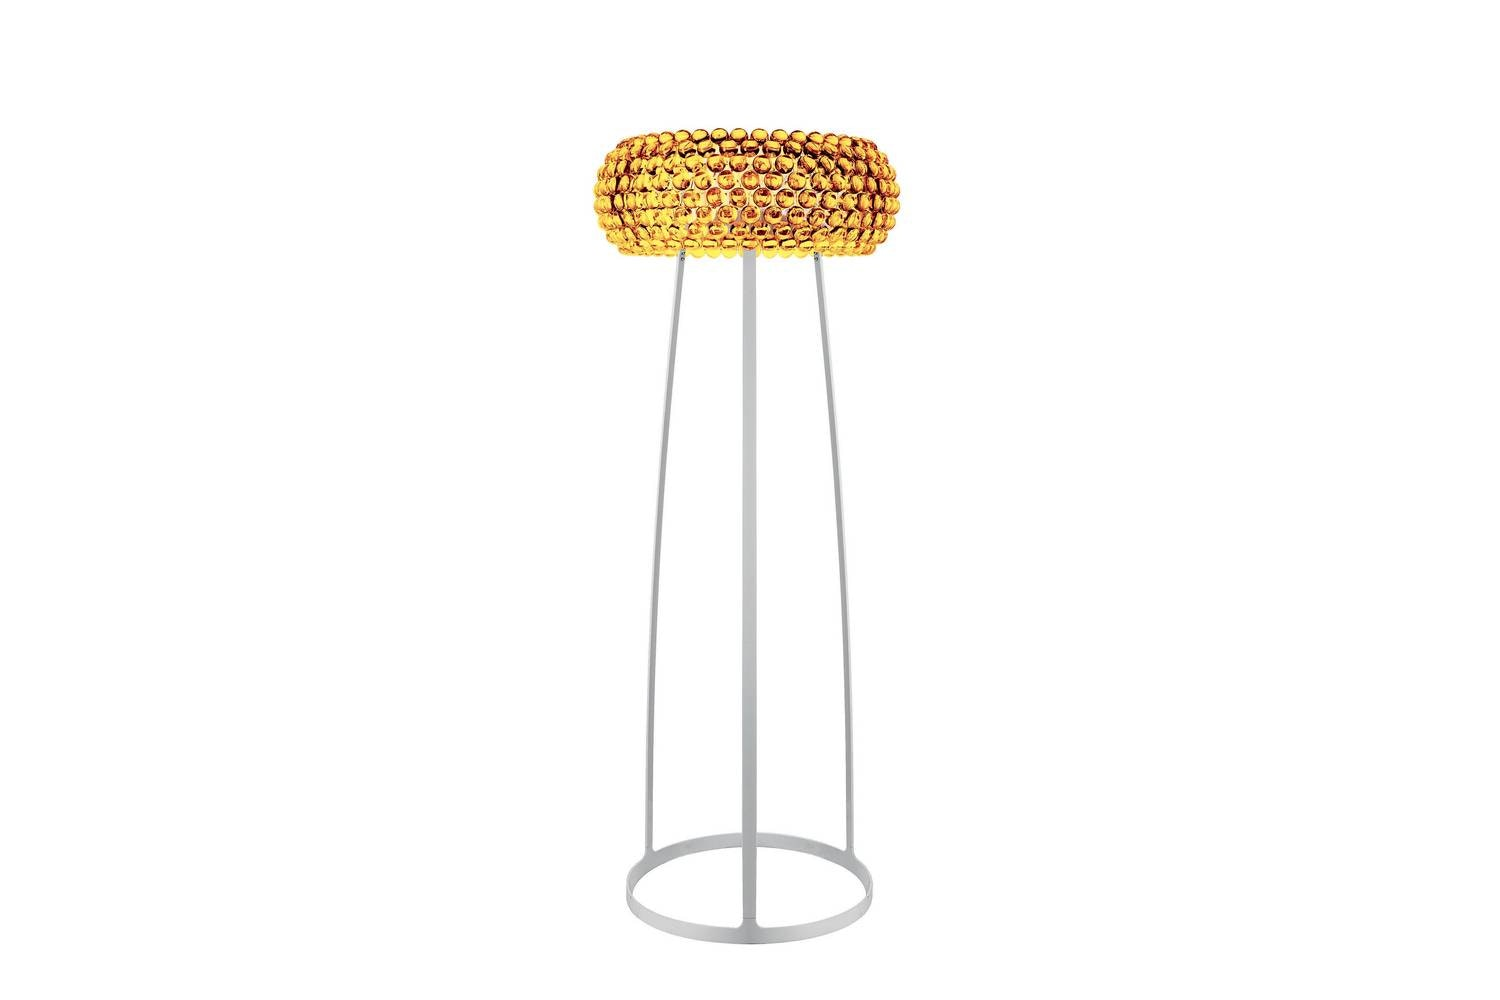 Caboche Grande Floor Lamp by Patricia Urquiola & Eliana Gerotto for Foscarini